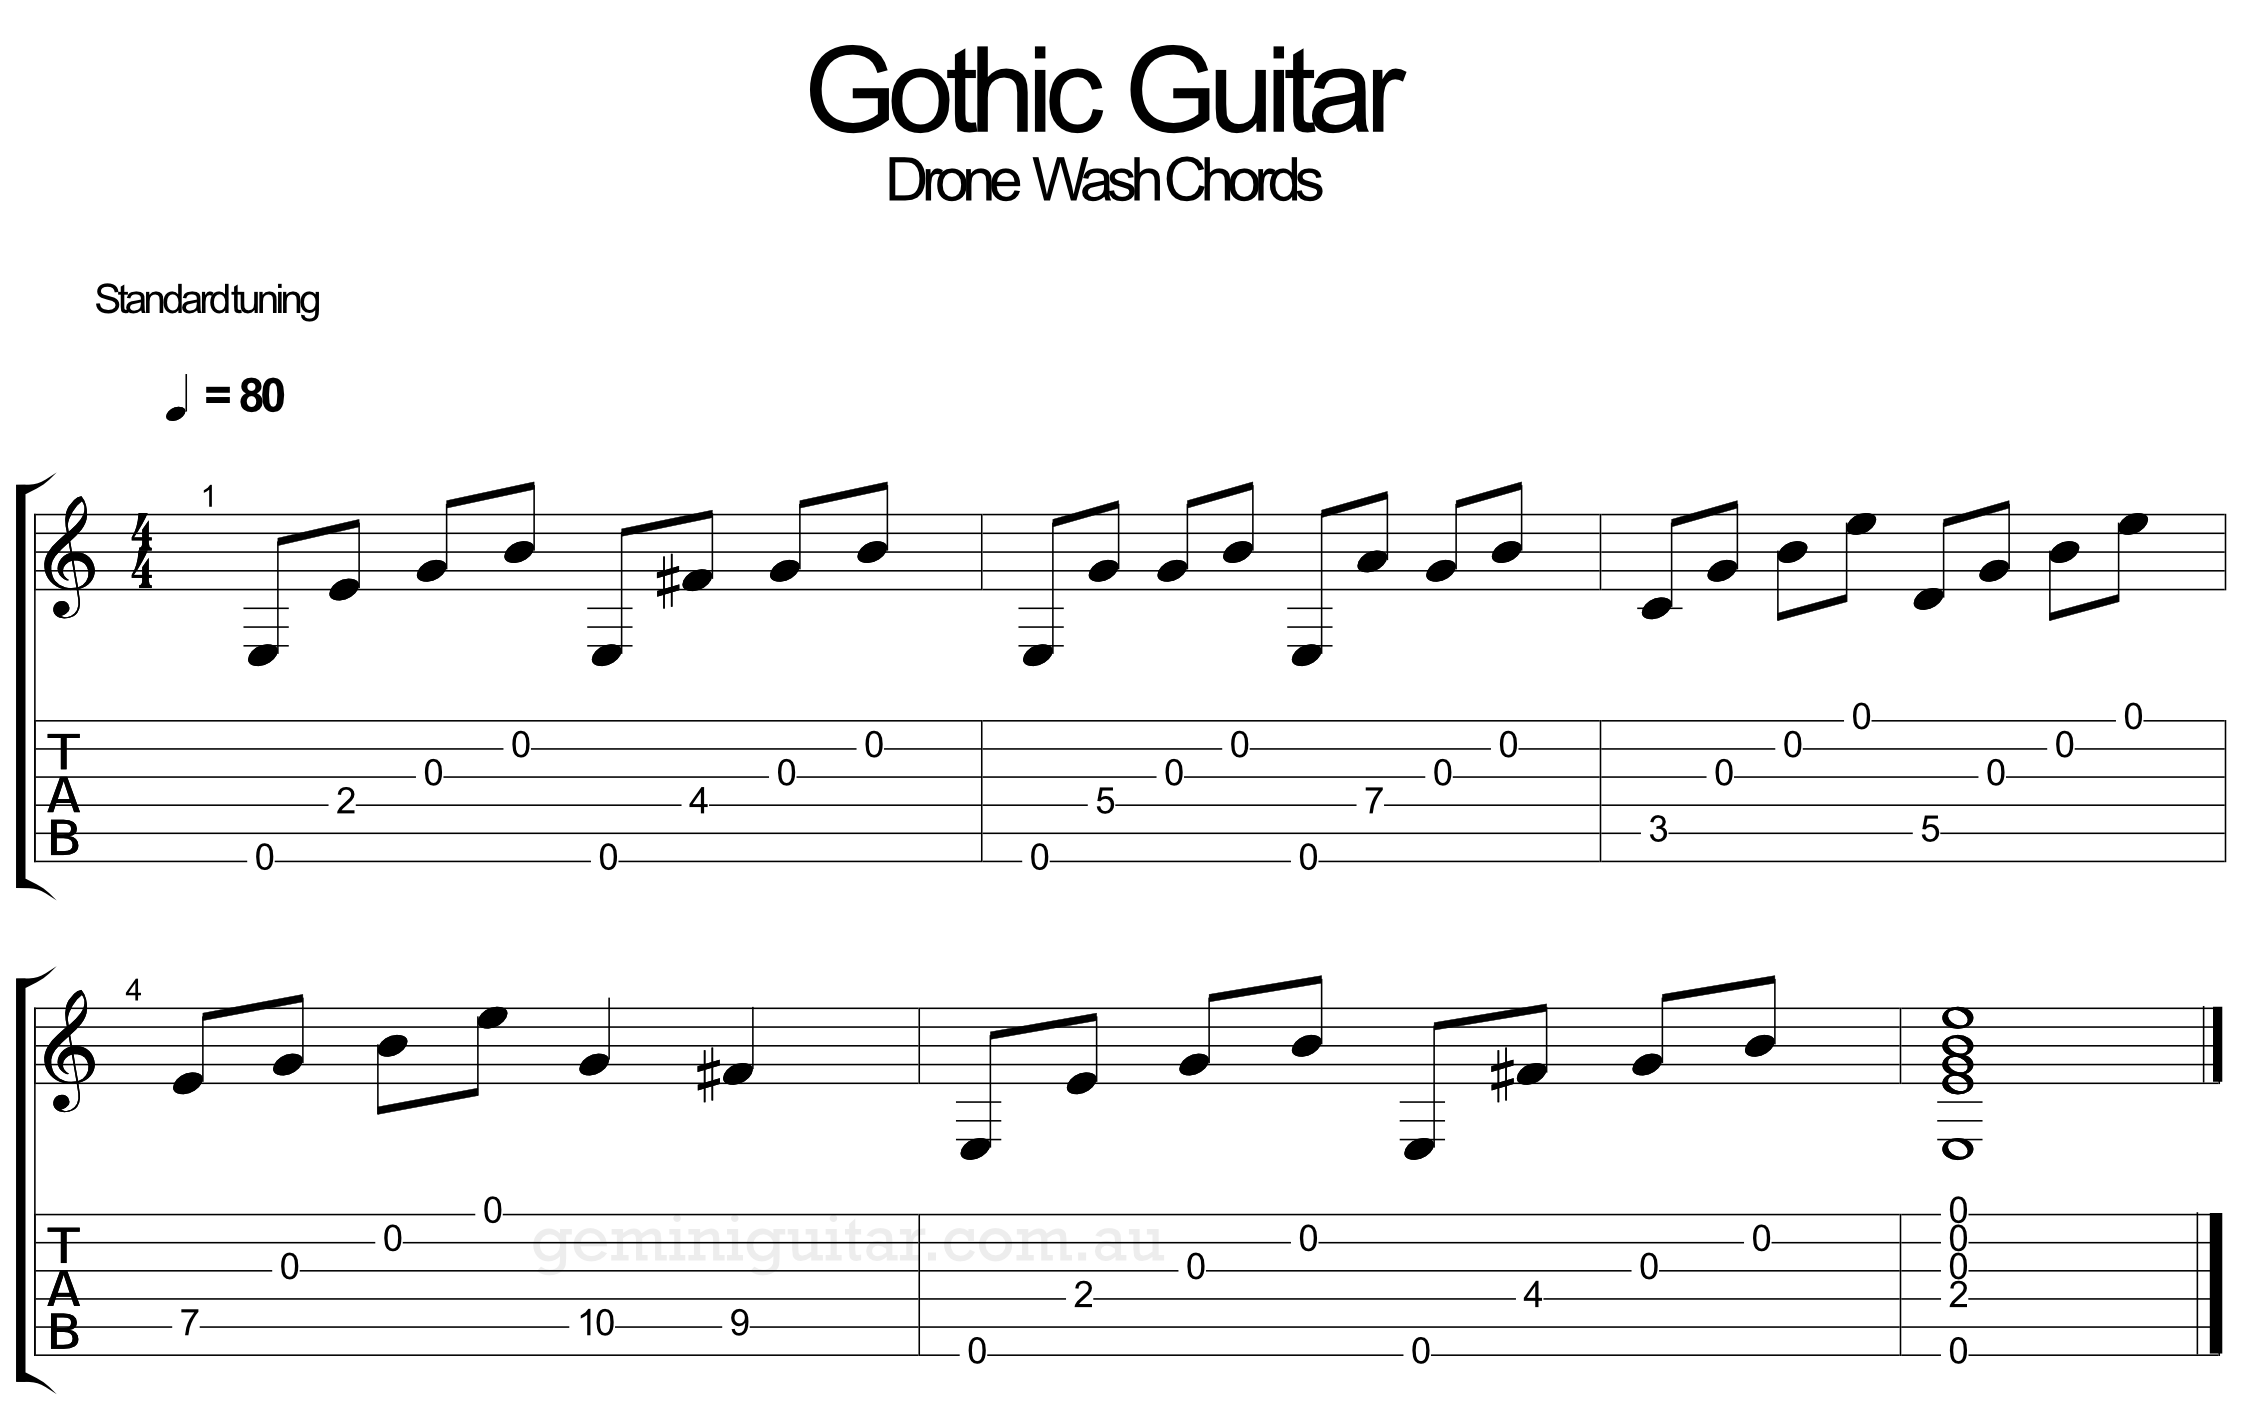 How to play easy Gothic guitar chords